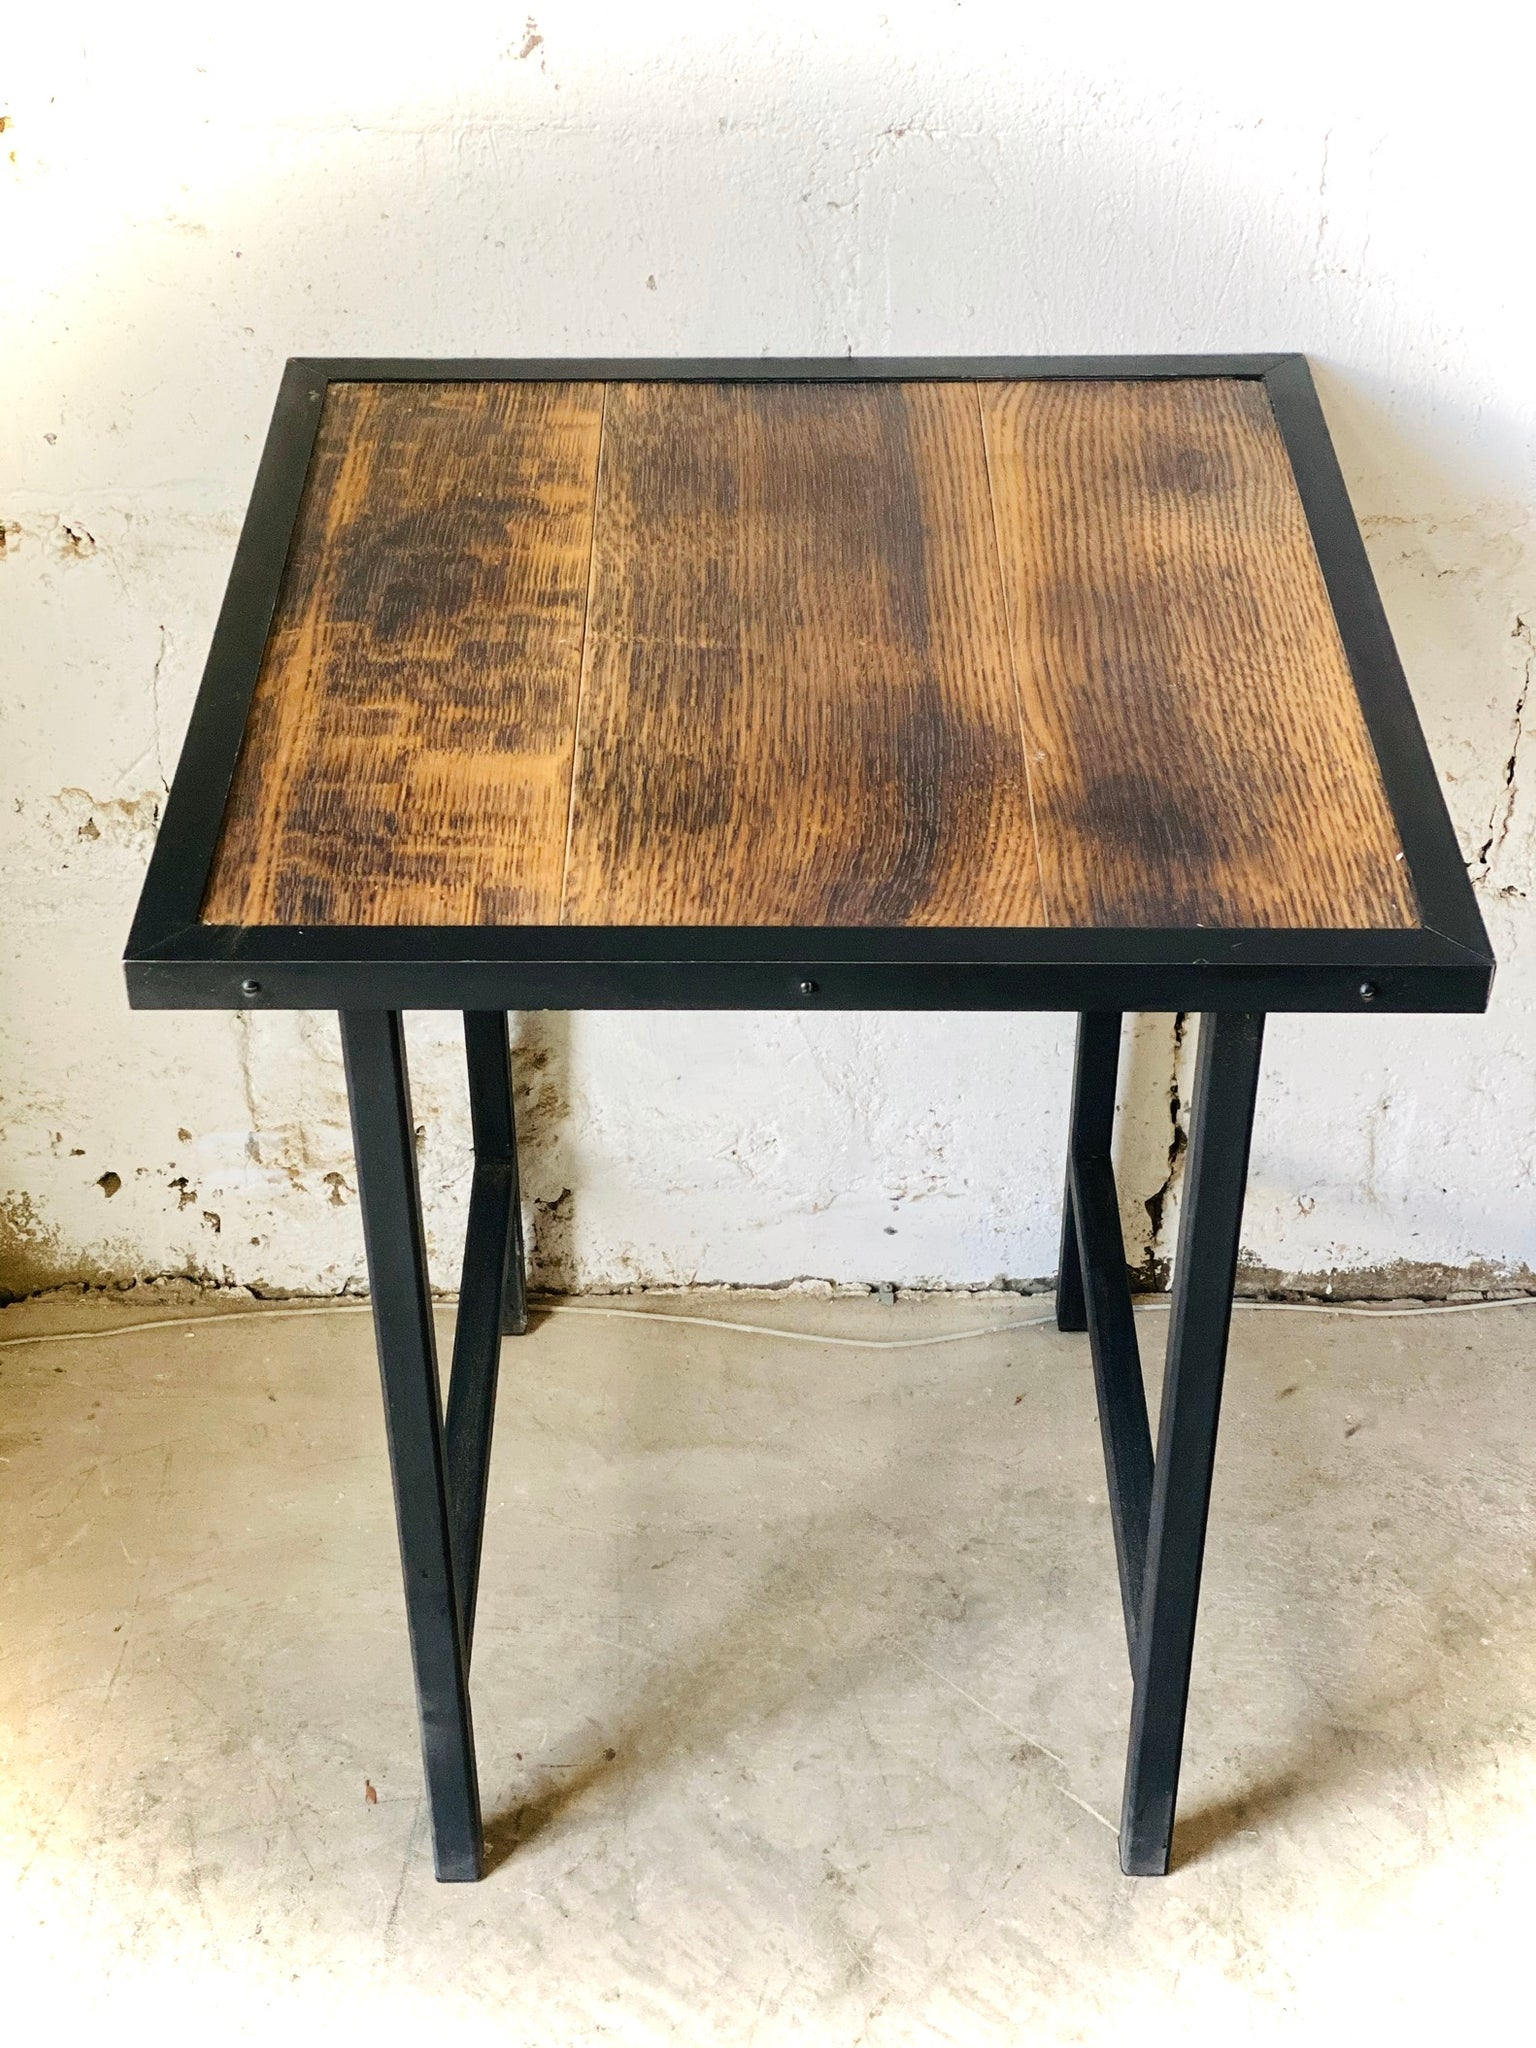 Made by Milne side table comprised of reclaimed flooring and blackened steel base with black steel edging